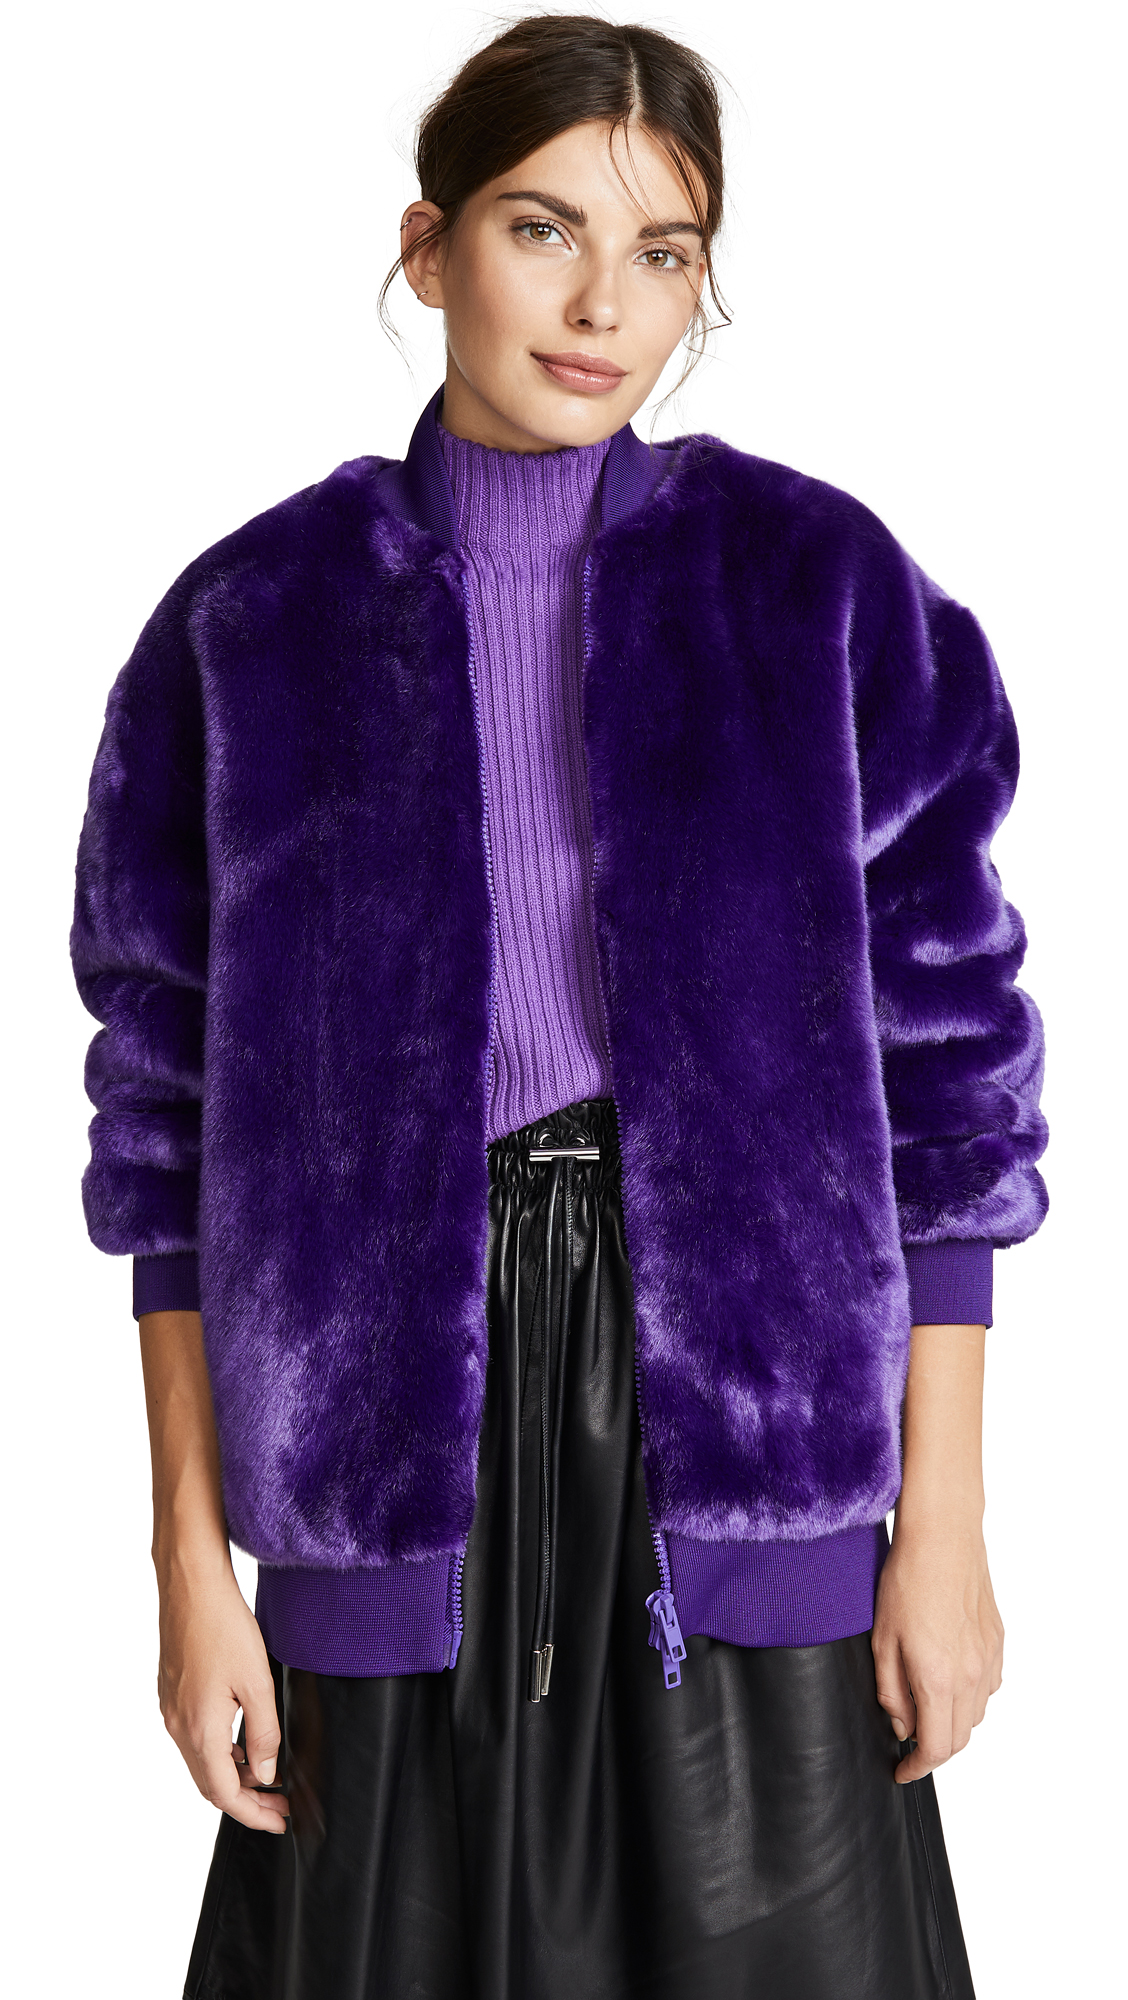 Tibi Zip Up Track Jacket - Purple